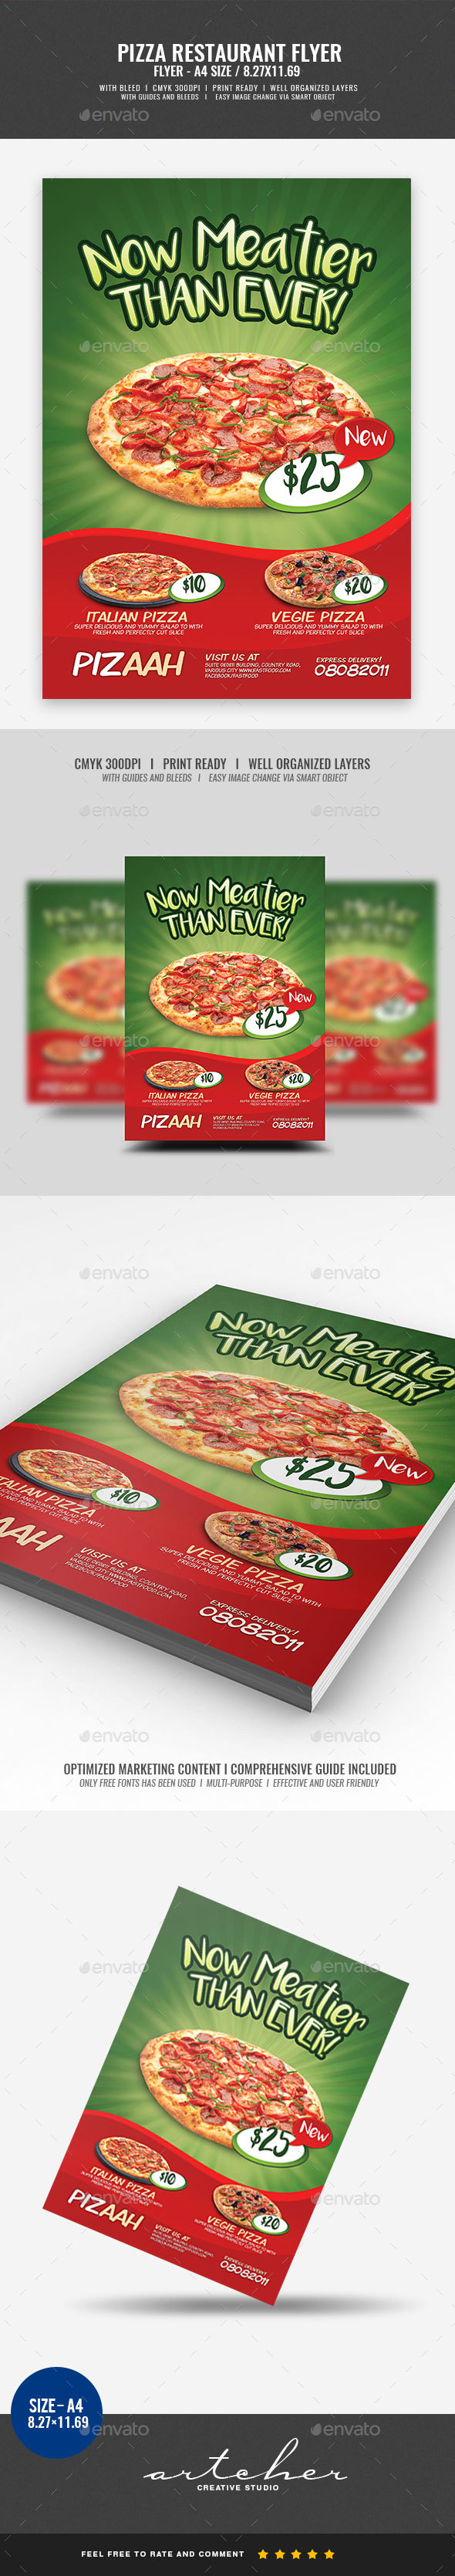 Pizza Restaurant Flyer - Restaurant Flyers